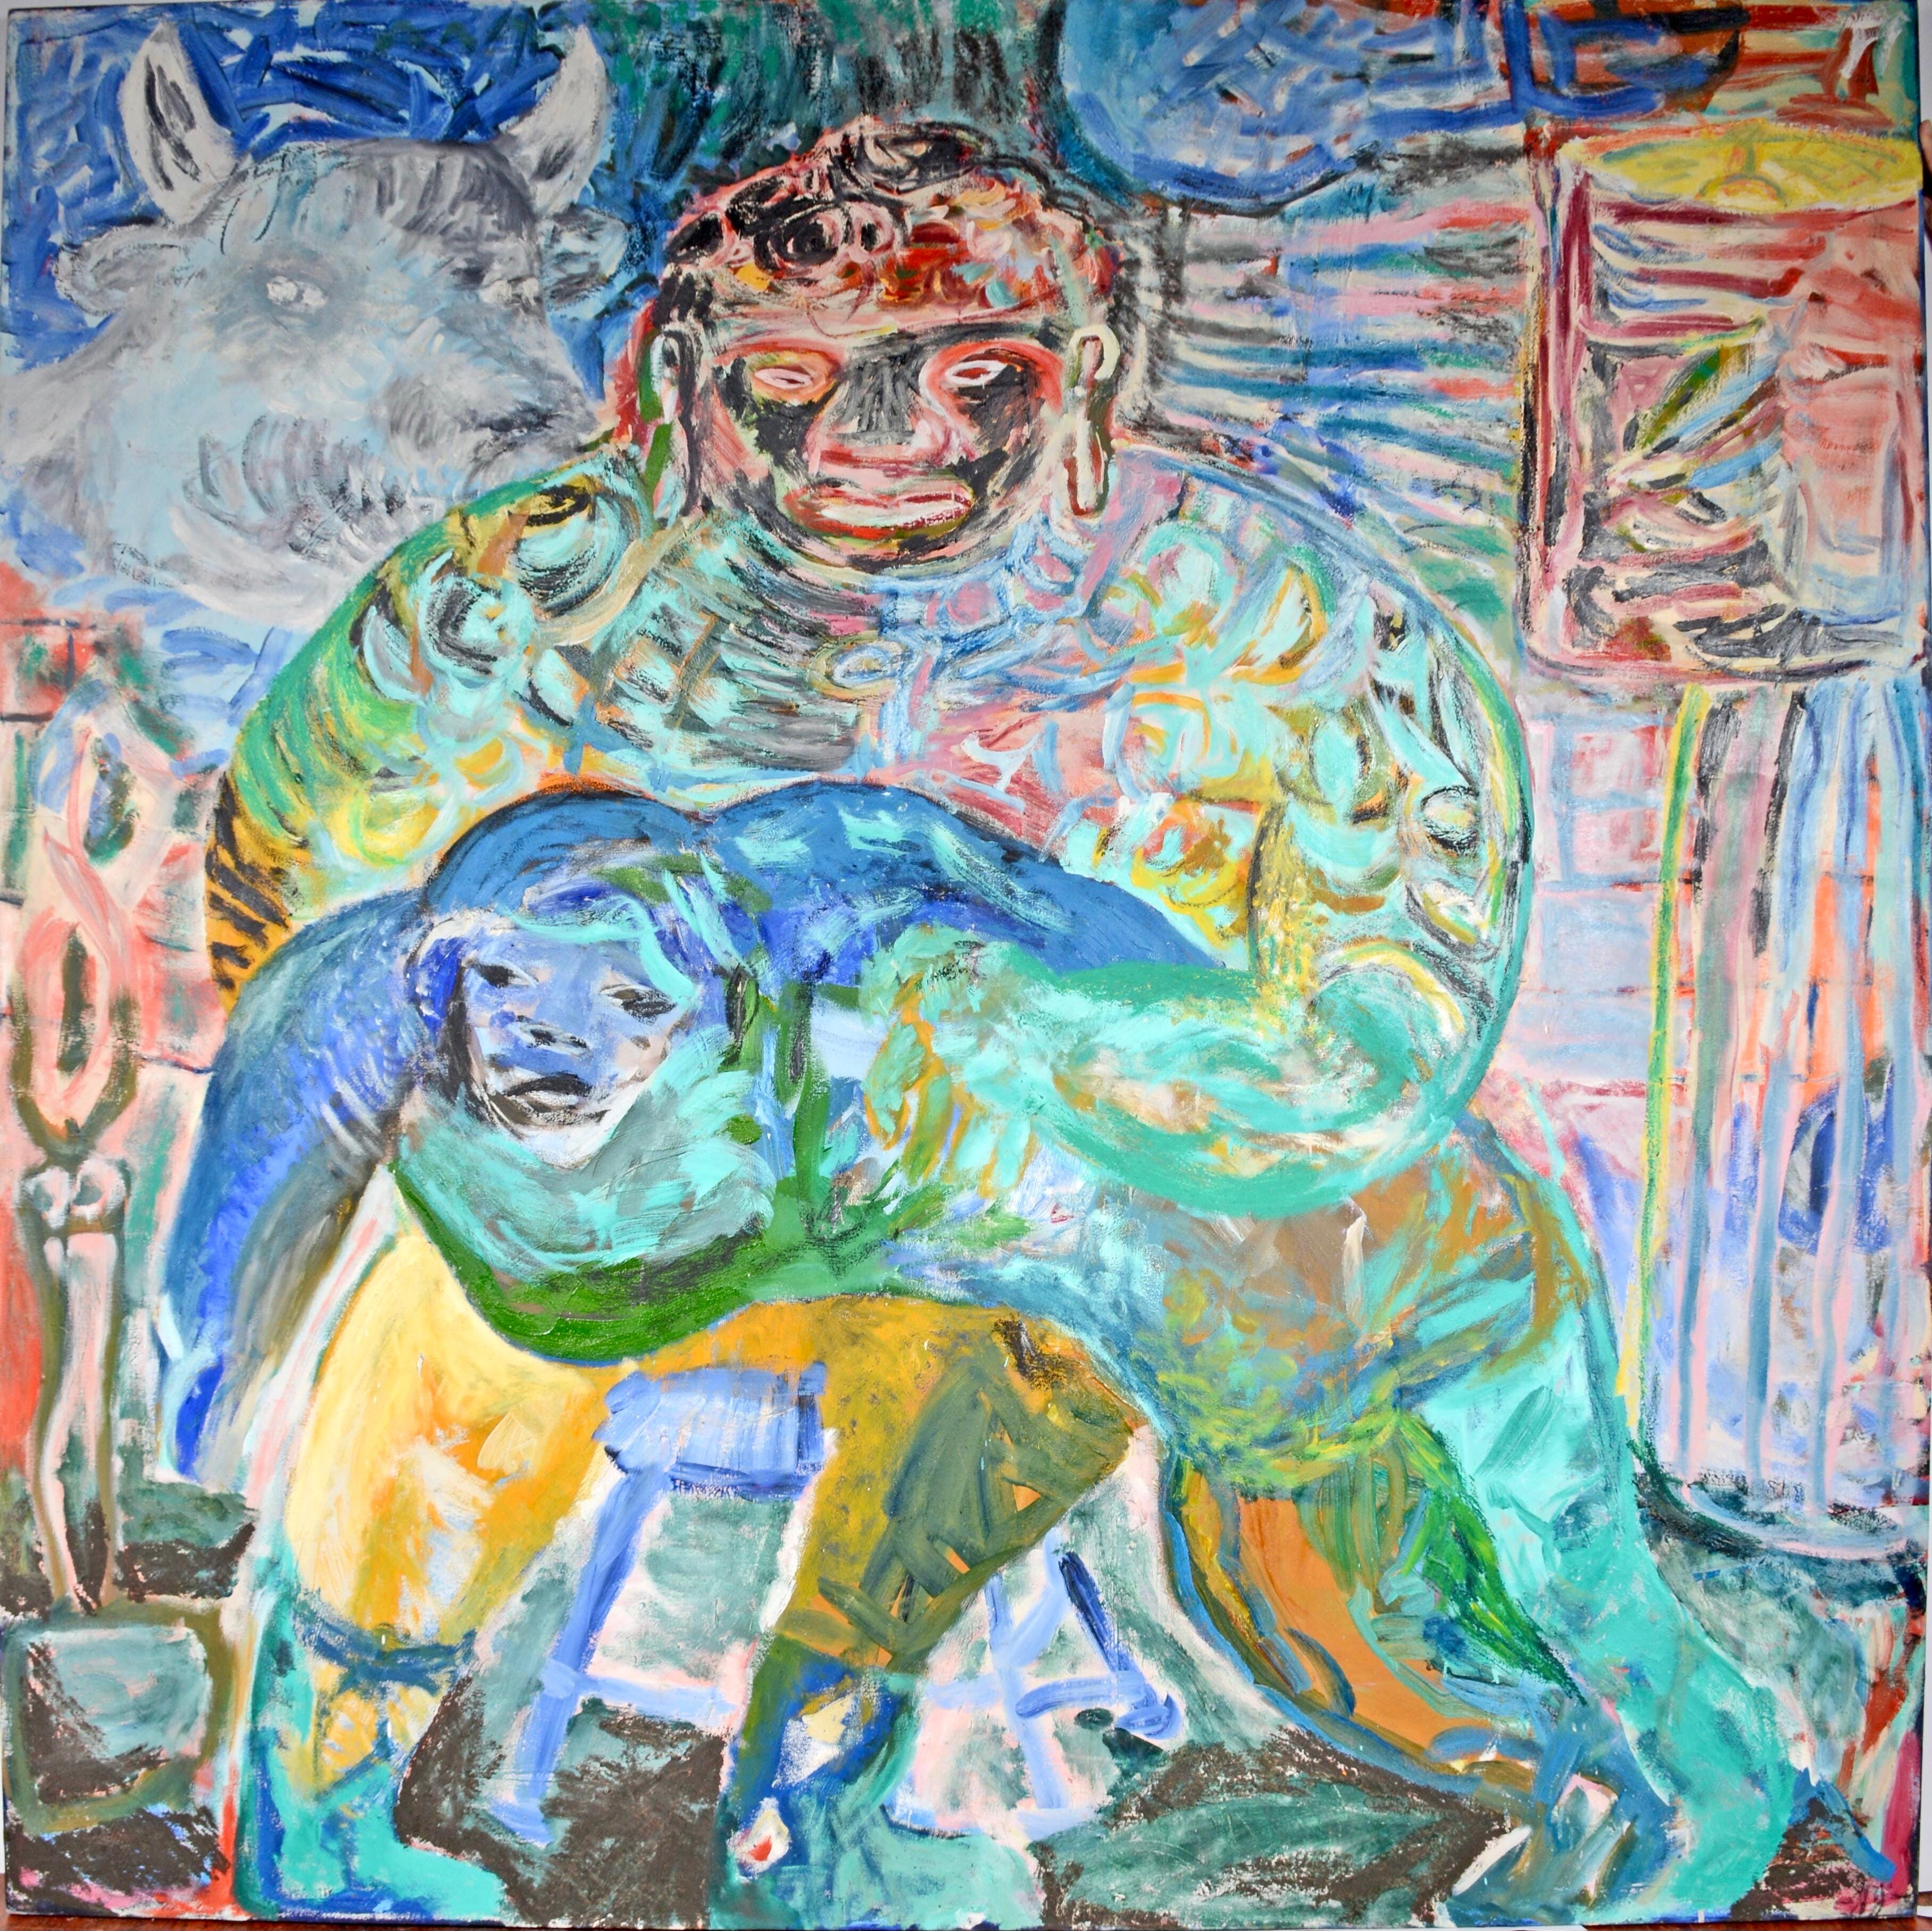 Large Colorful 1983 Neo Expressionist Roberto Juarez Oil Painting Tron Family